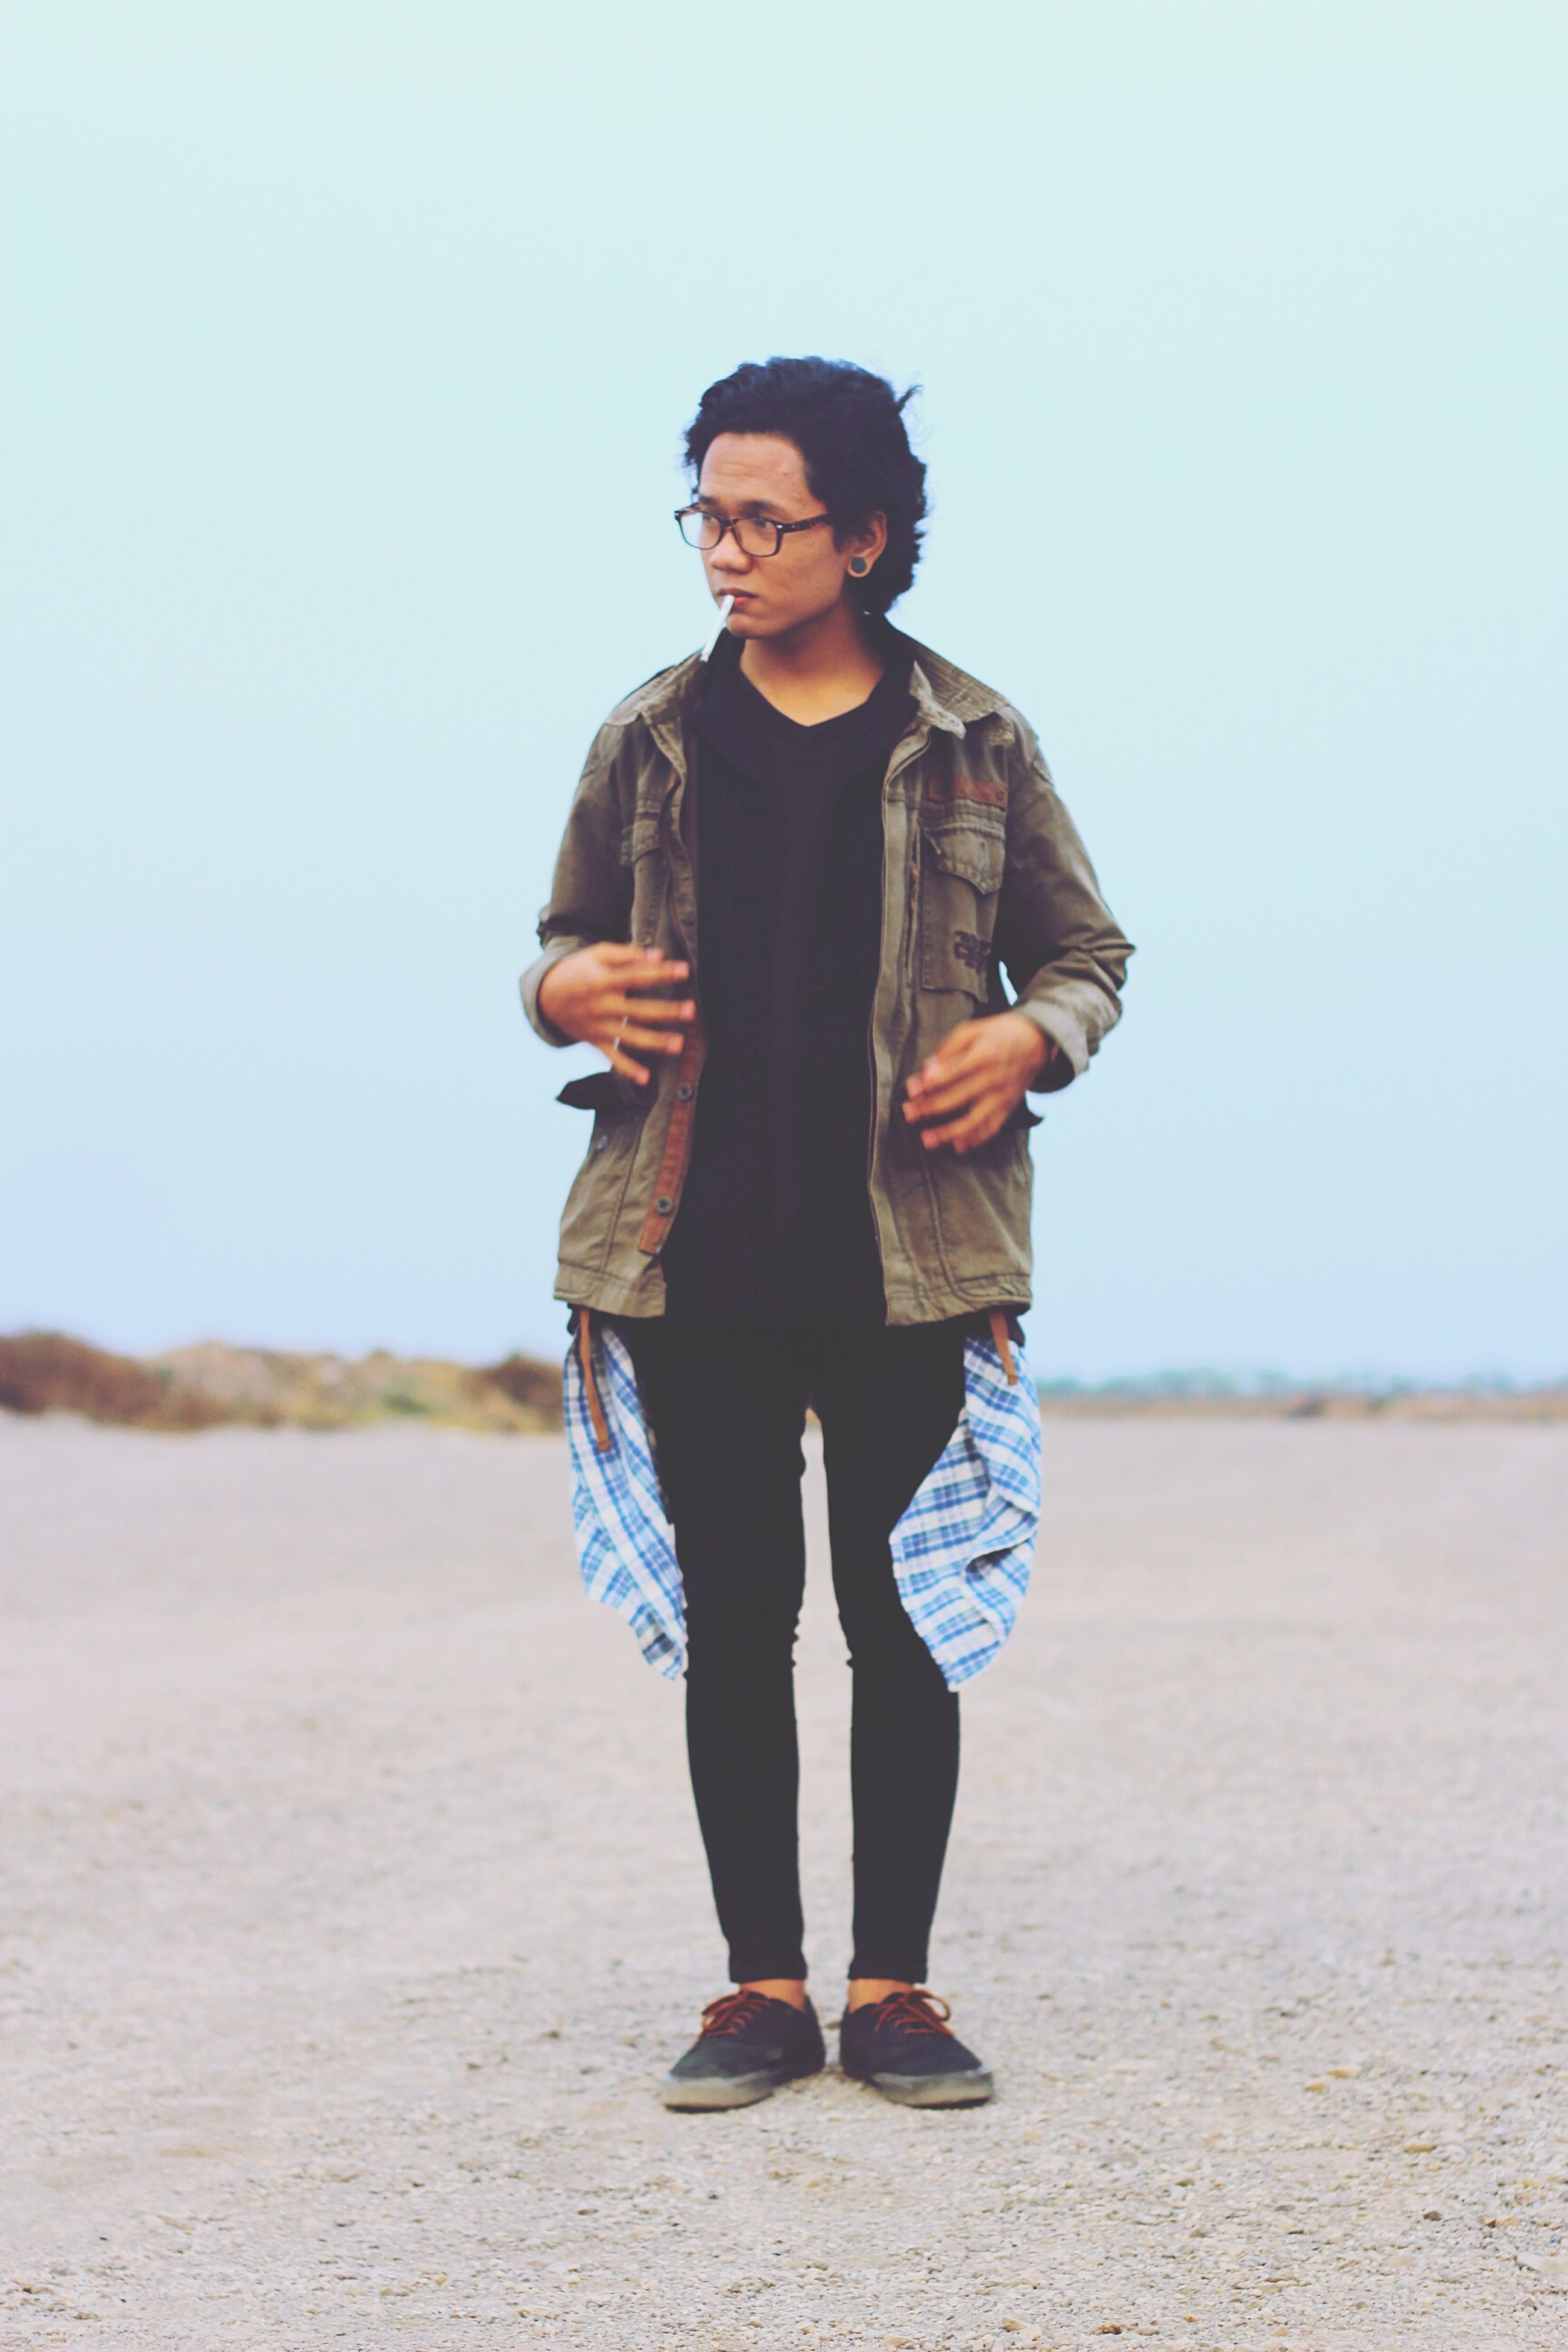 young adult, casual clothing, standing, lifestyles, front view, person, portrait, looking at camera, full length, young women, leisure activity, sunglasses, smiling, three quarter length, fashion, clear sky, day